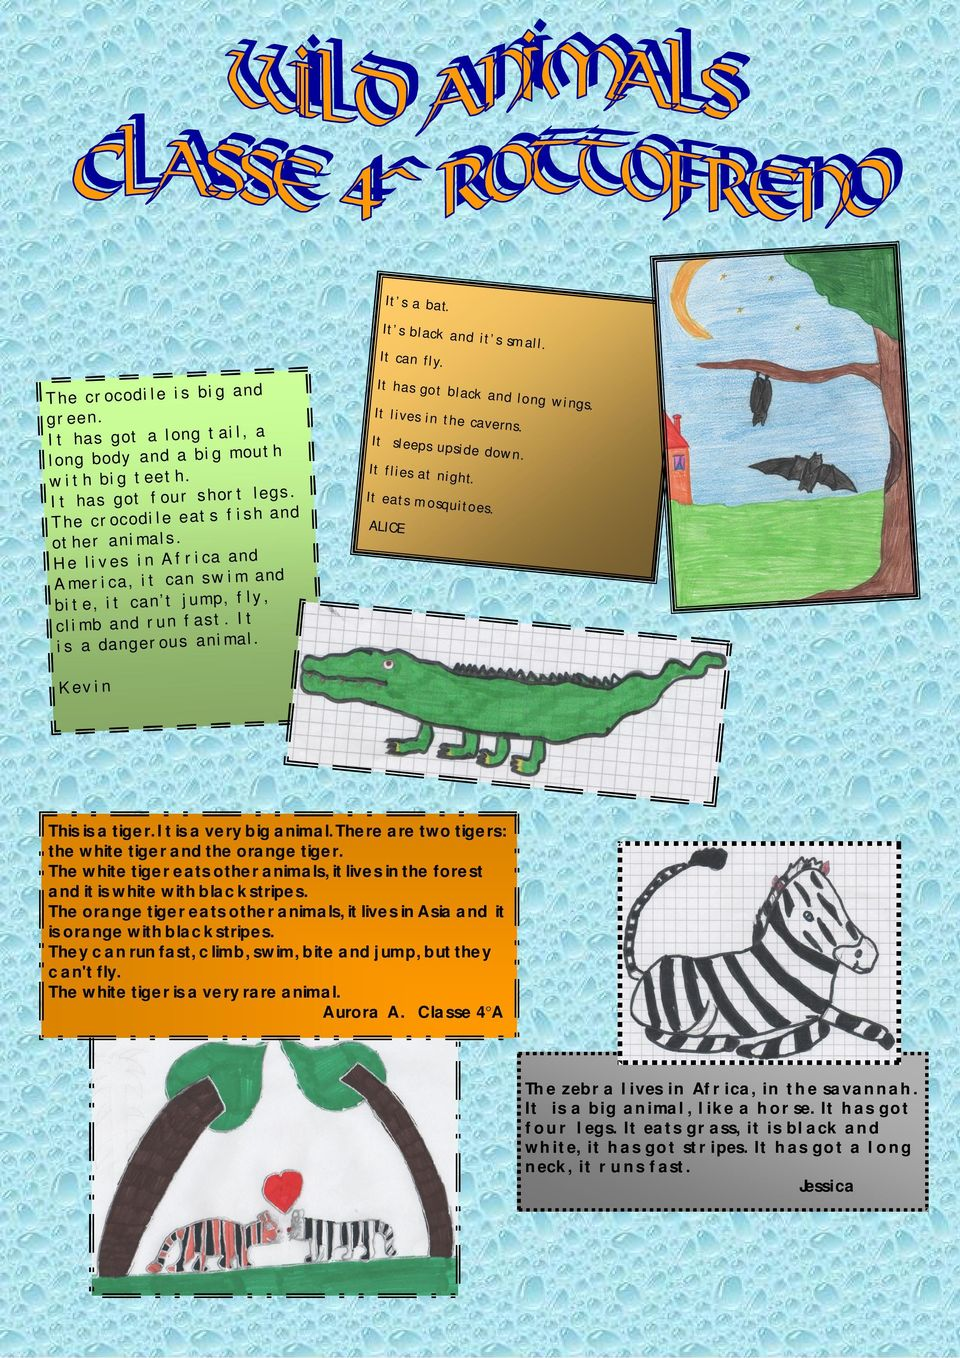 It has got black and long wings. It lives in the caverns. It sleeps upside down. It flies at night. It eats mosquitoes. ALICE Kevin This is a tiger. It is a very big animal.